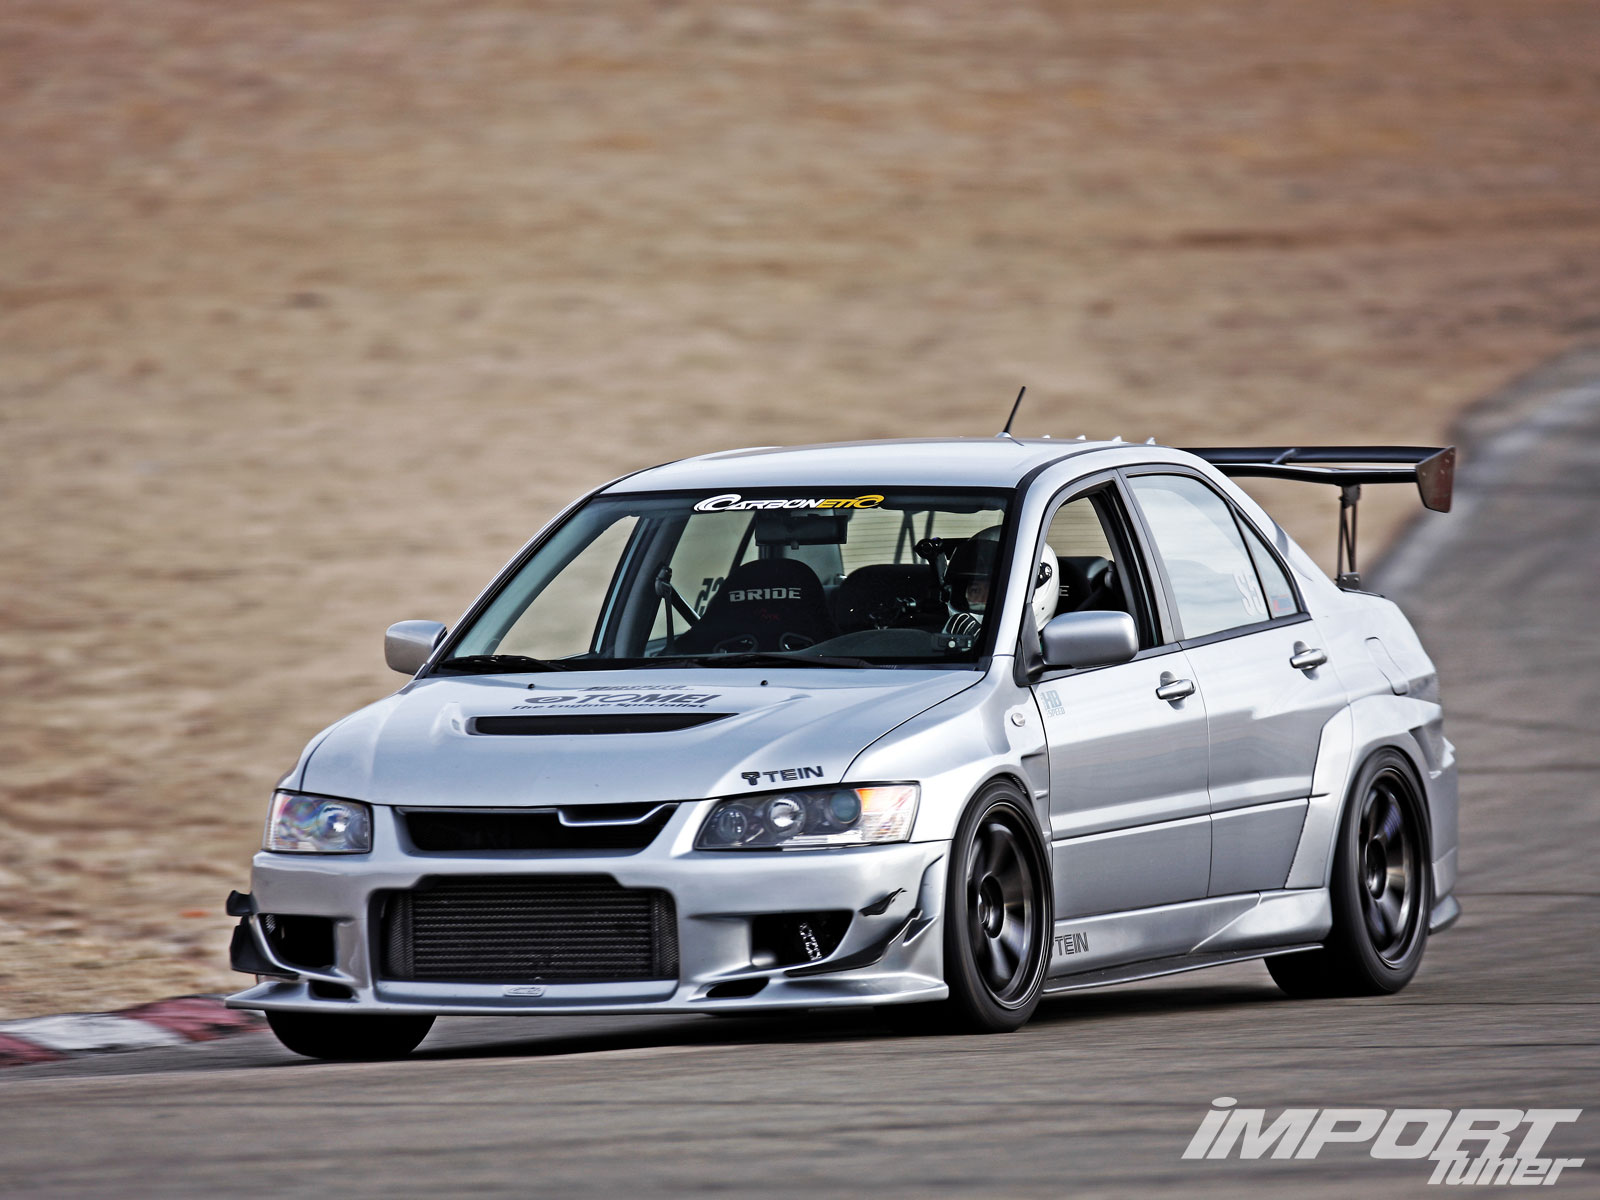 Mitsubishi Lancer Evolution MR (2006) - pictures, information & specs